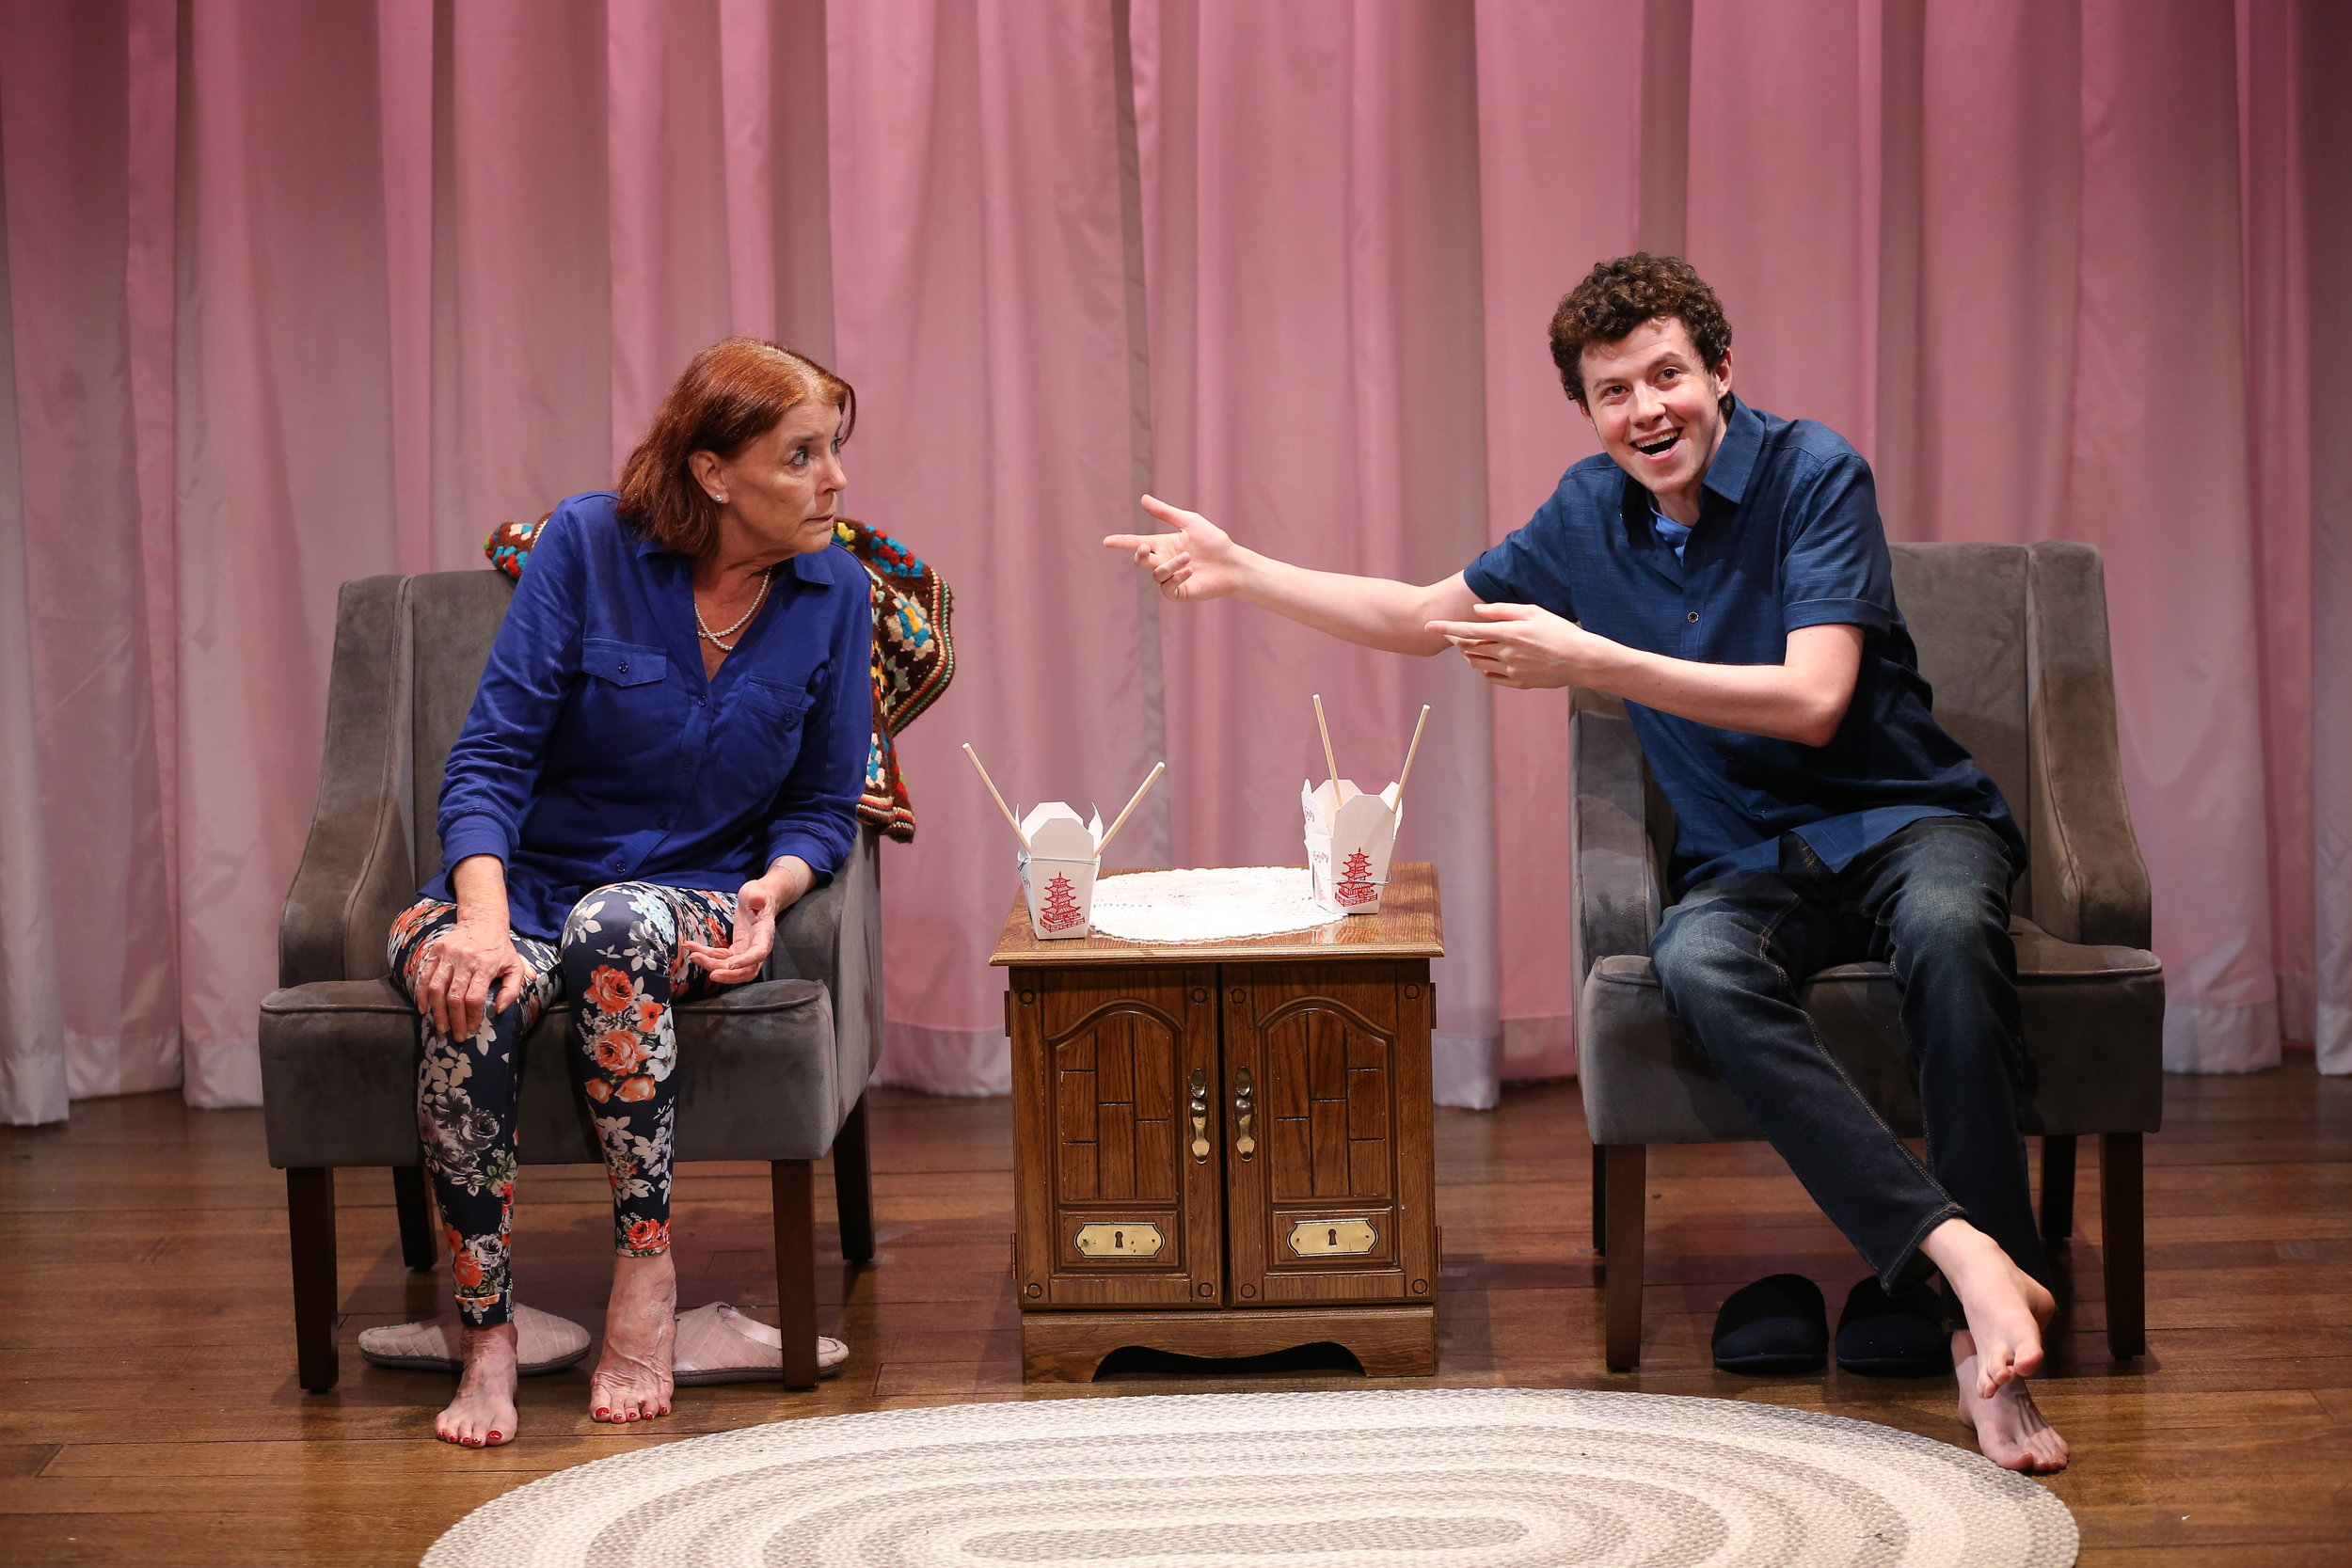 L-R: Kate Buddeke and Adam Langdon in THE LIVING ROOM by Robert O'Hara, part of Summer Shorts 2018 at 59E59 Theaters. Photo by Carol Rosegg.